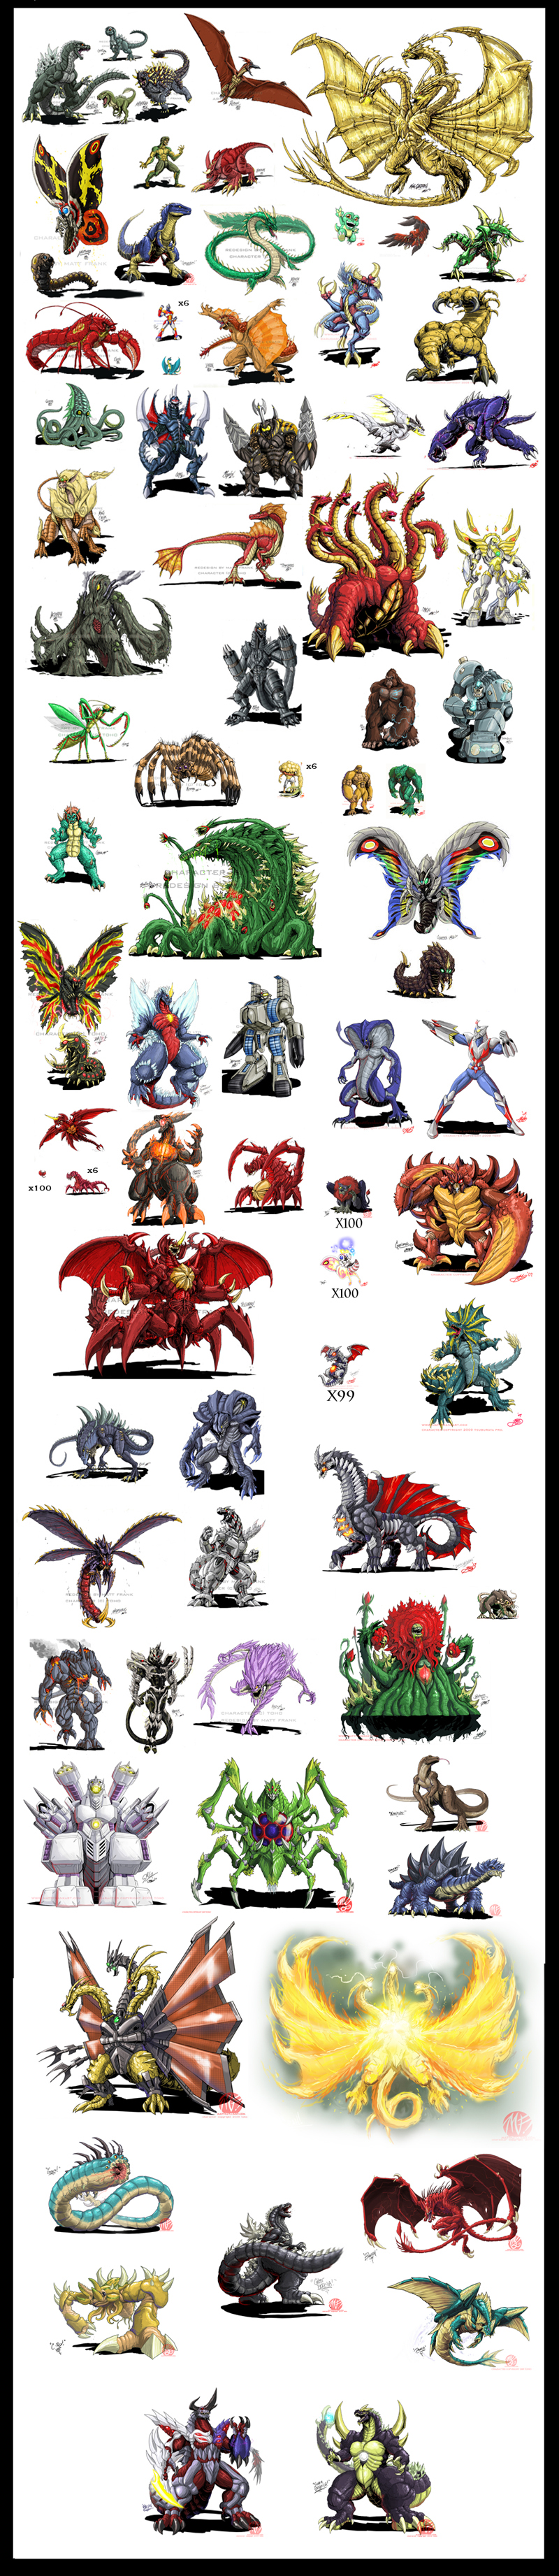 list of monsters i wan...